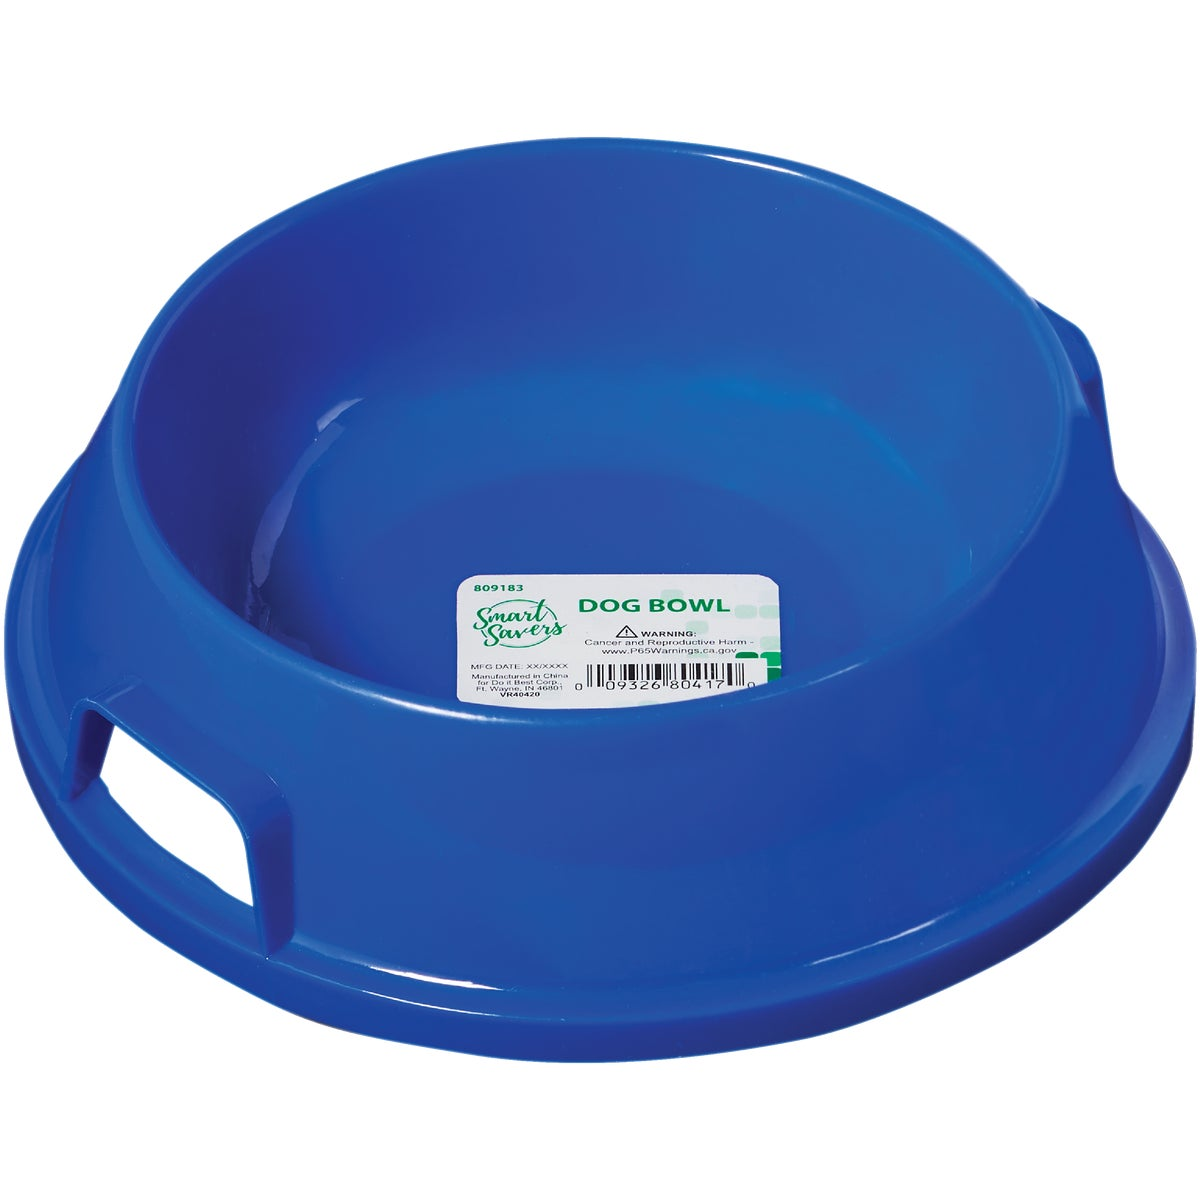 DOG BOWL - 080002 by Do it Best